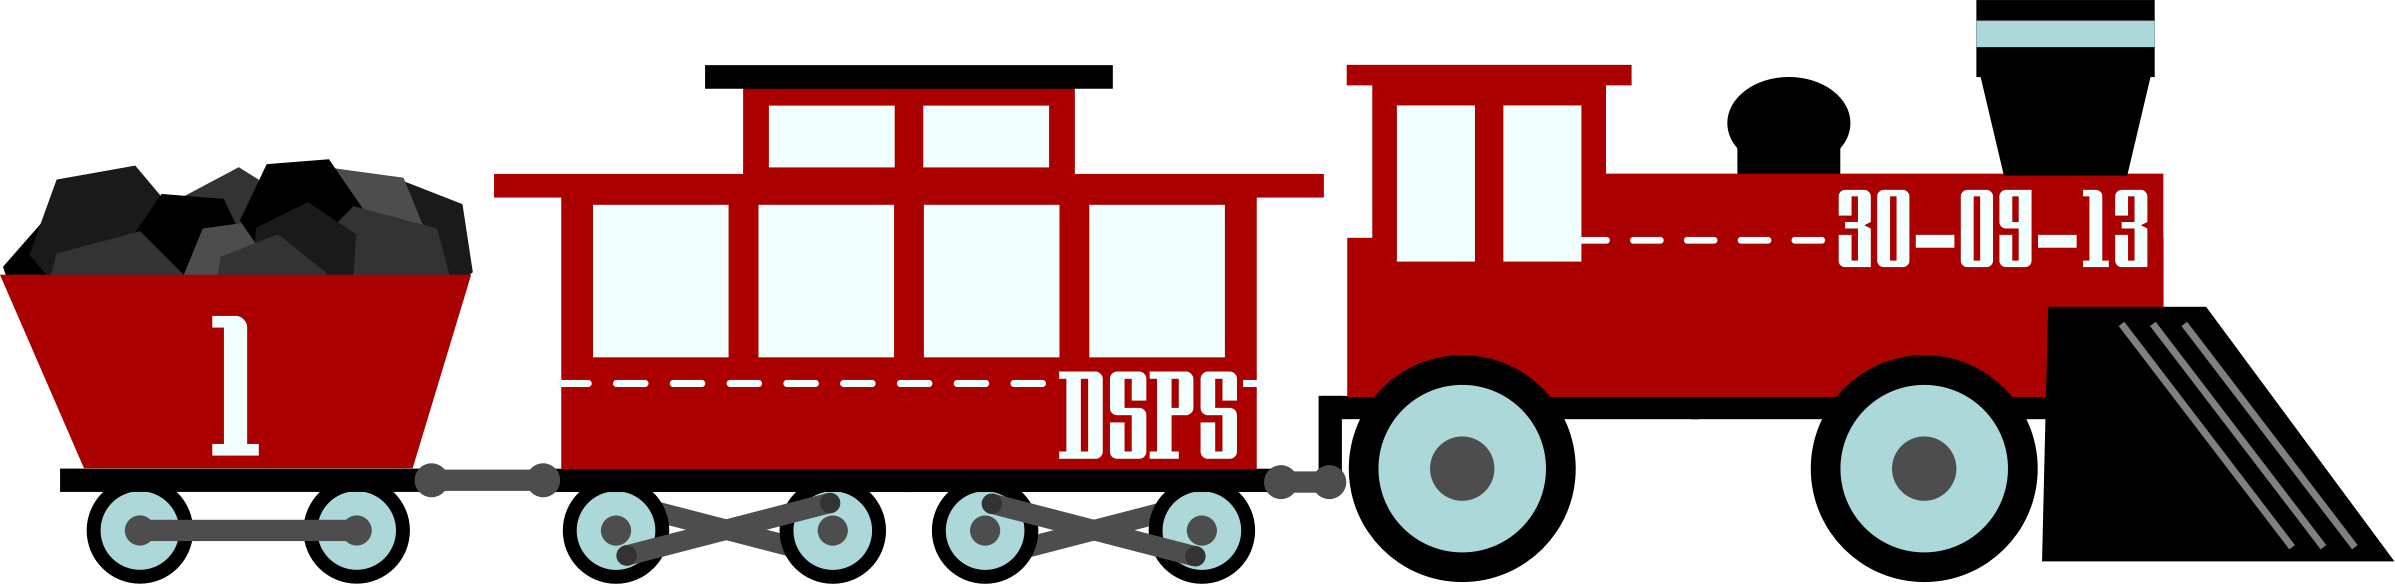 clipart free stock Locomotive free on dumielauxepices. Caboose clipart